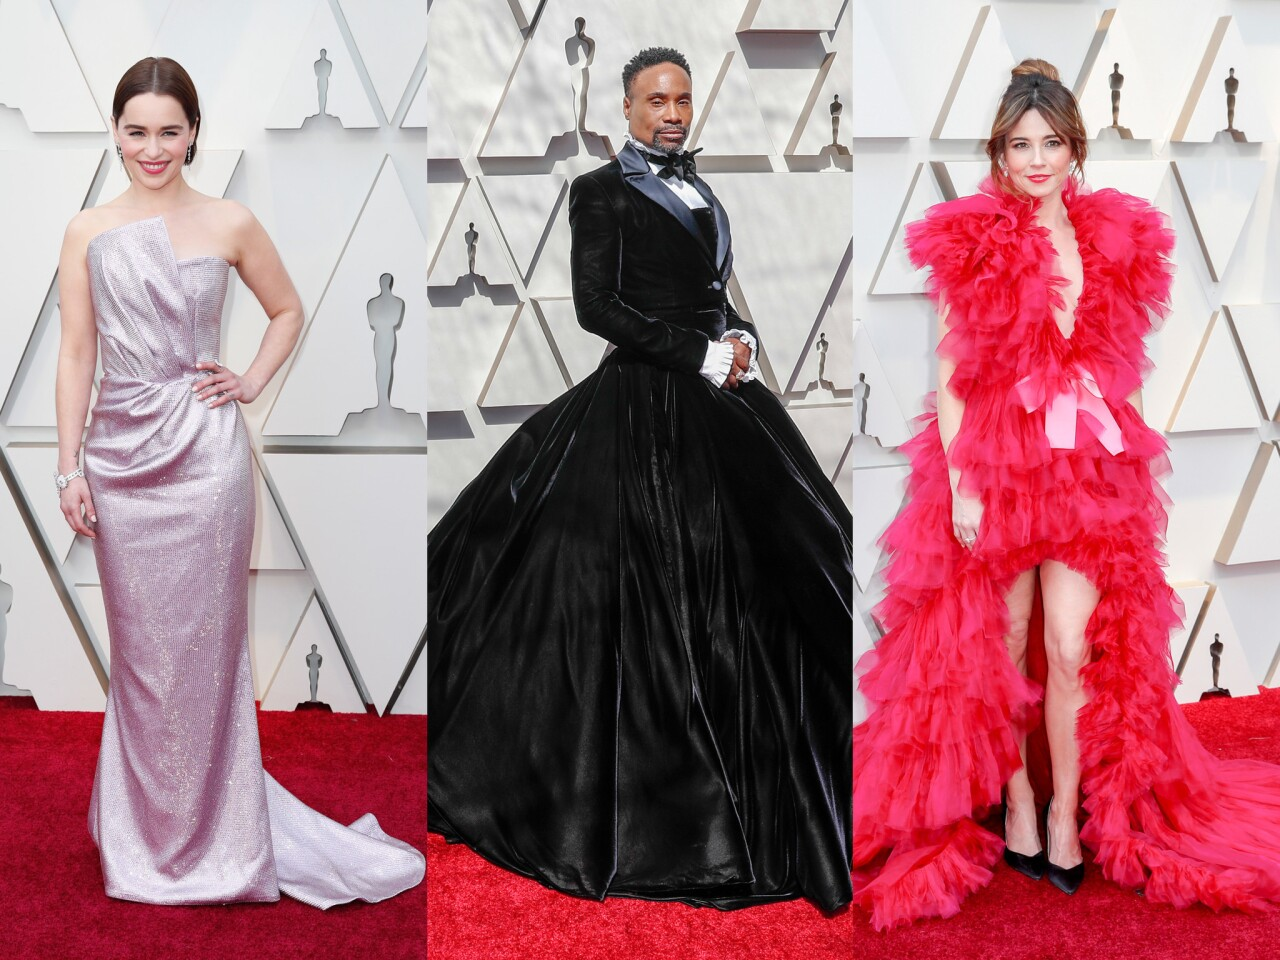 Oscars 2019 fashion hits and misses